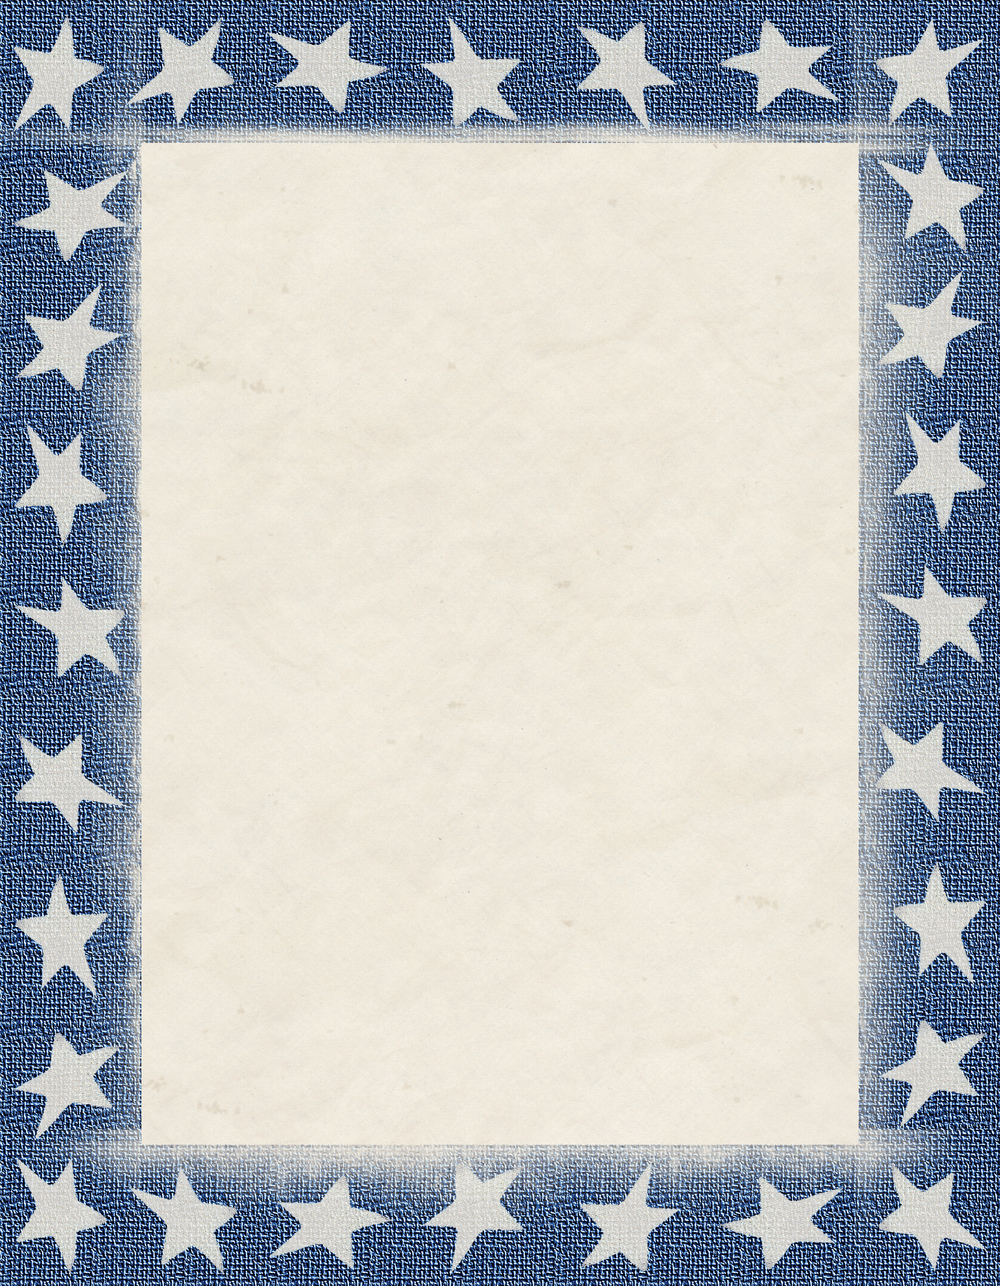 Patriotic Collection - B1336S (background)